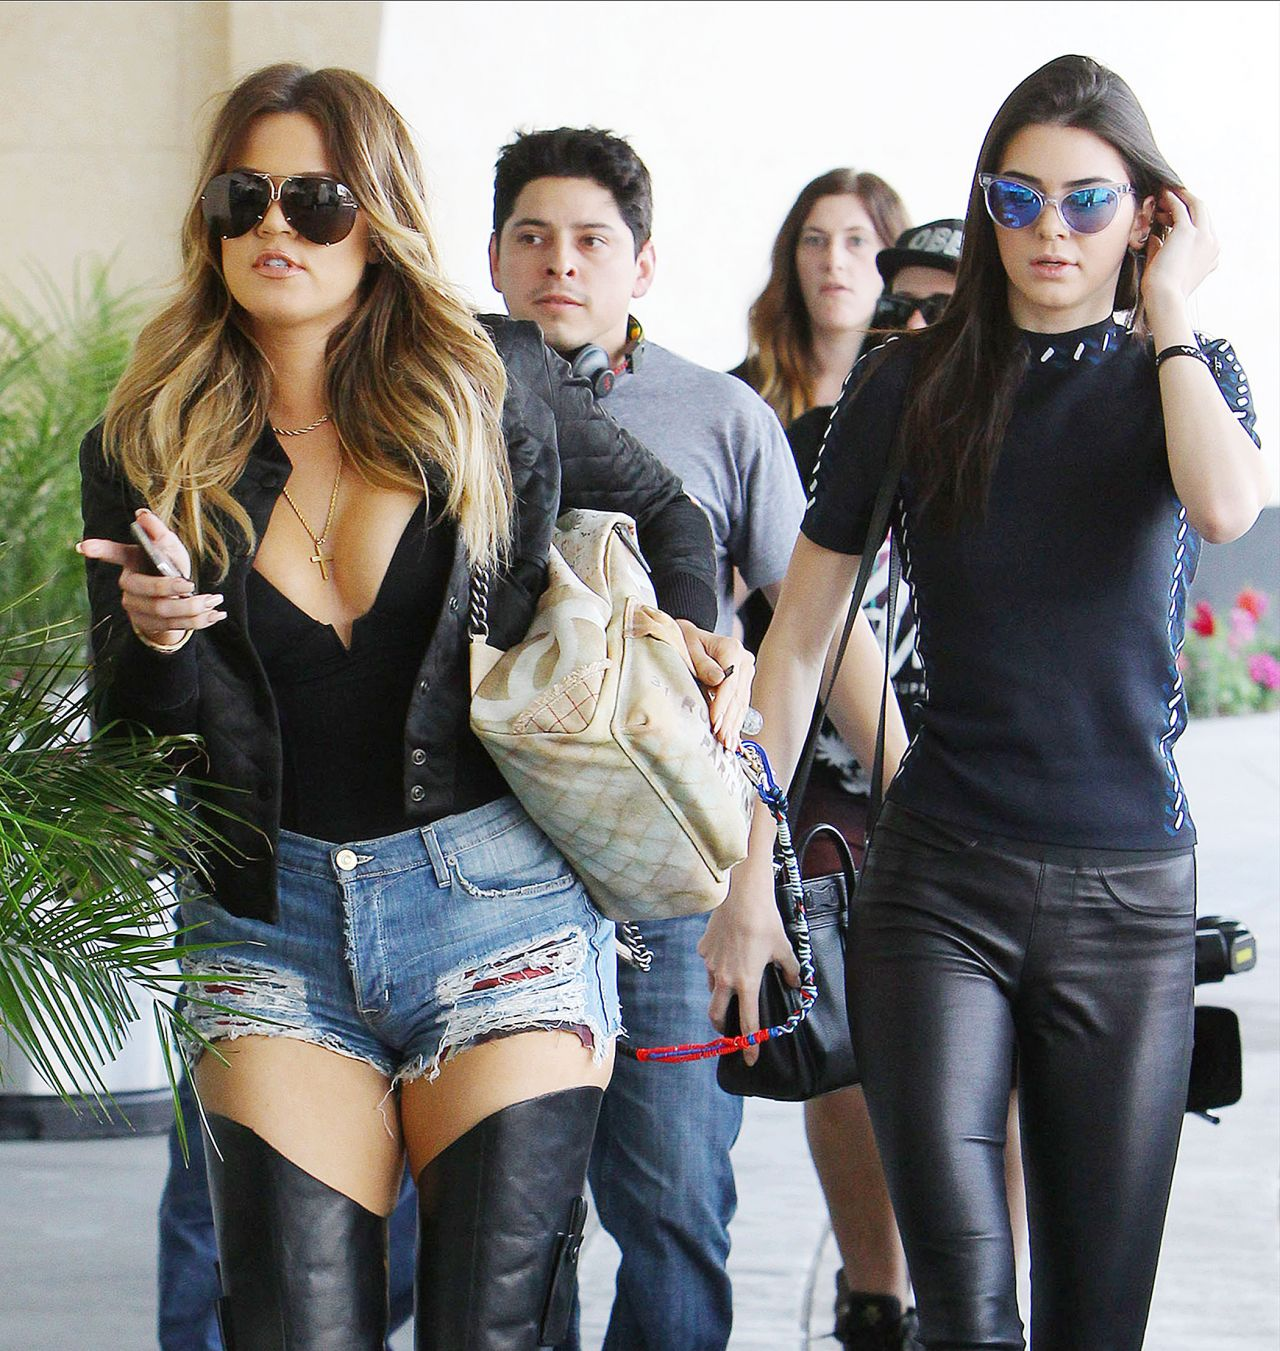 Khloe Kardashian & Kendall Jenner Style – Arriving at Loews Hollywood Hotel, March 2014